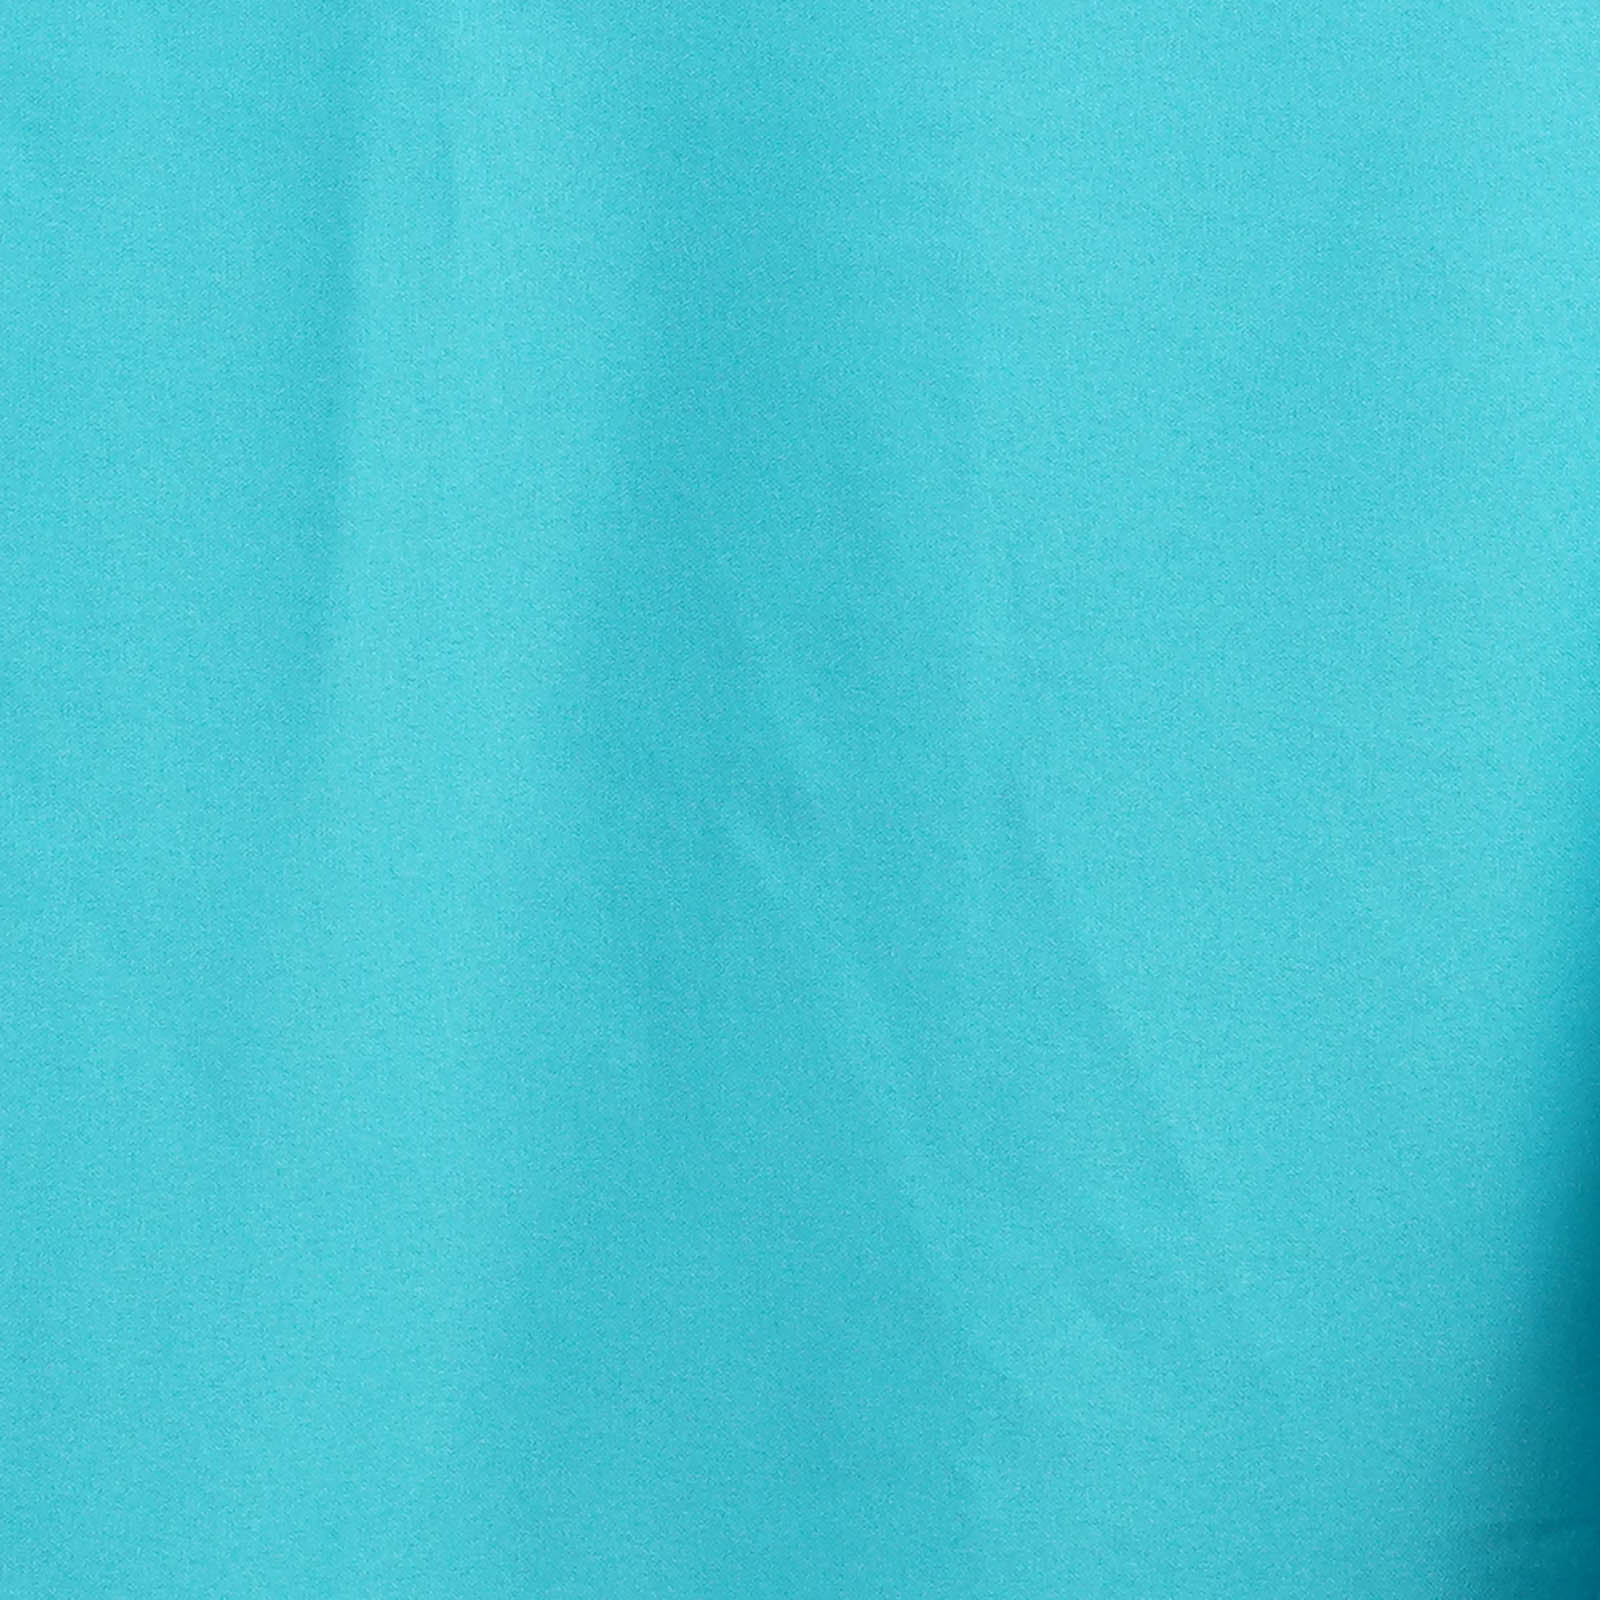 90x156-034-Polyester-Rectangle-Tablecloths-For-Wedding-Party-Banquet-Events thumbnail 59